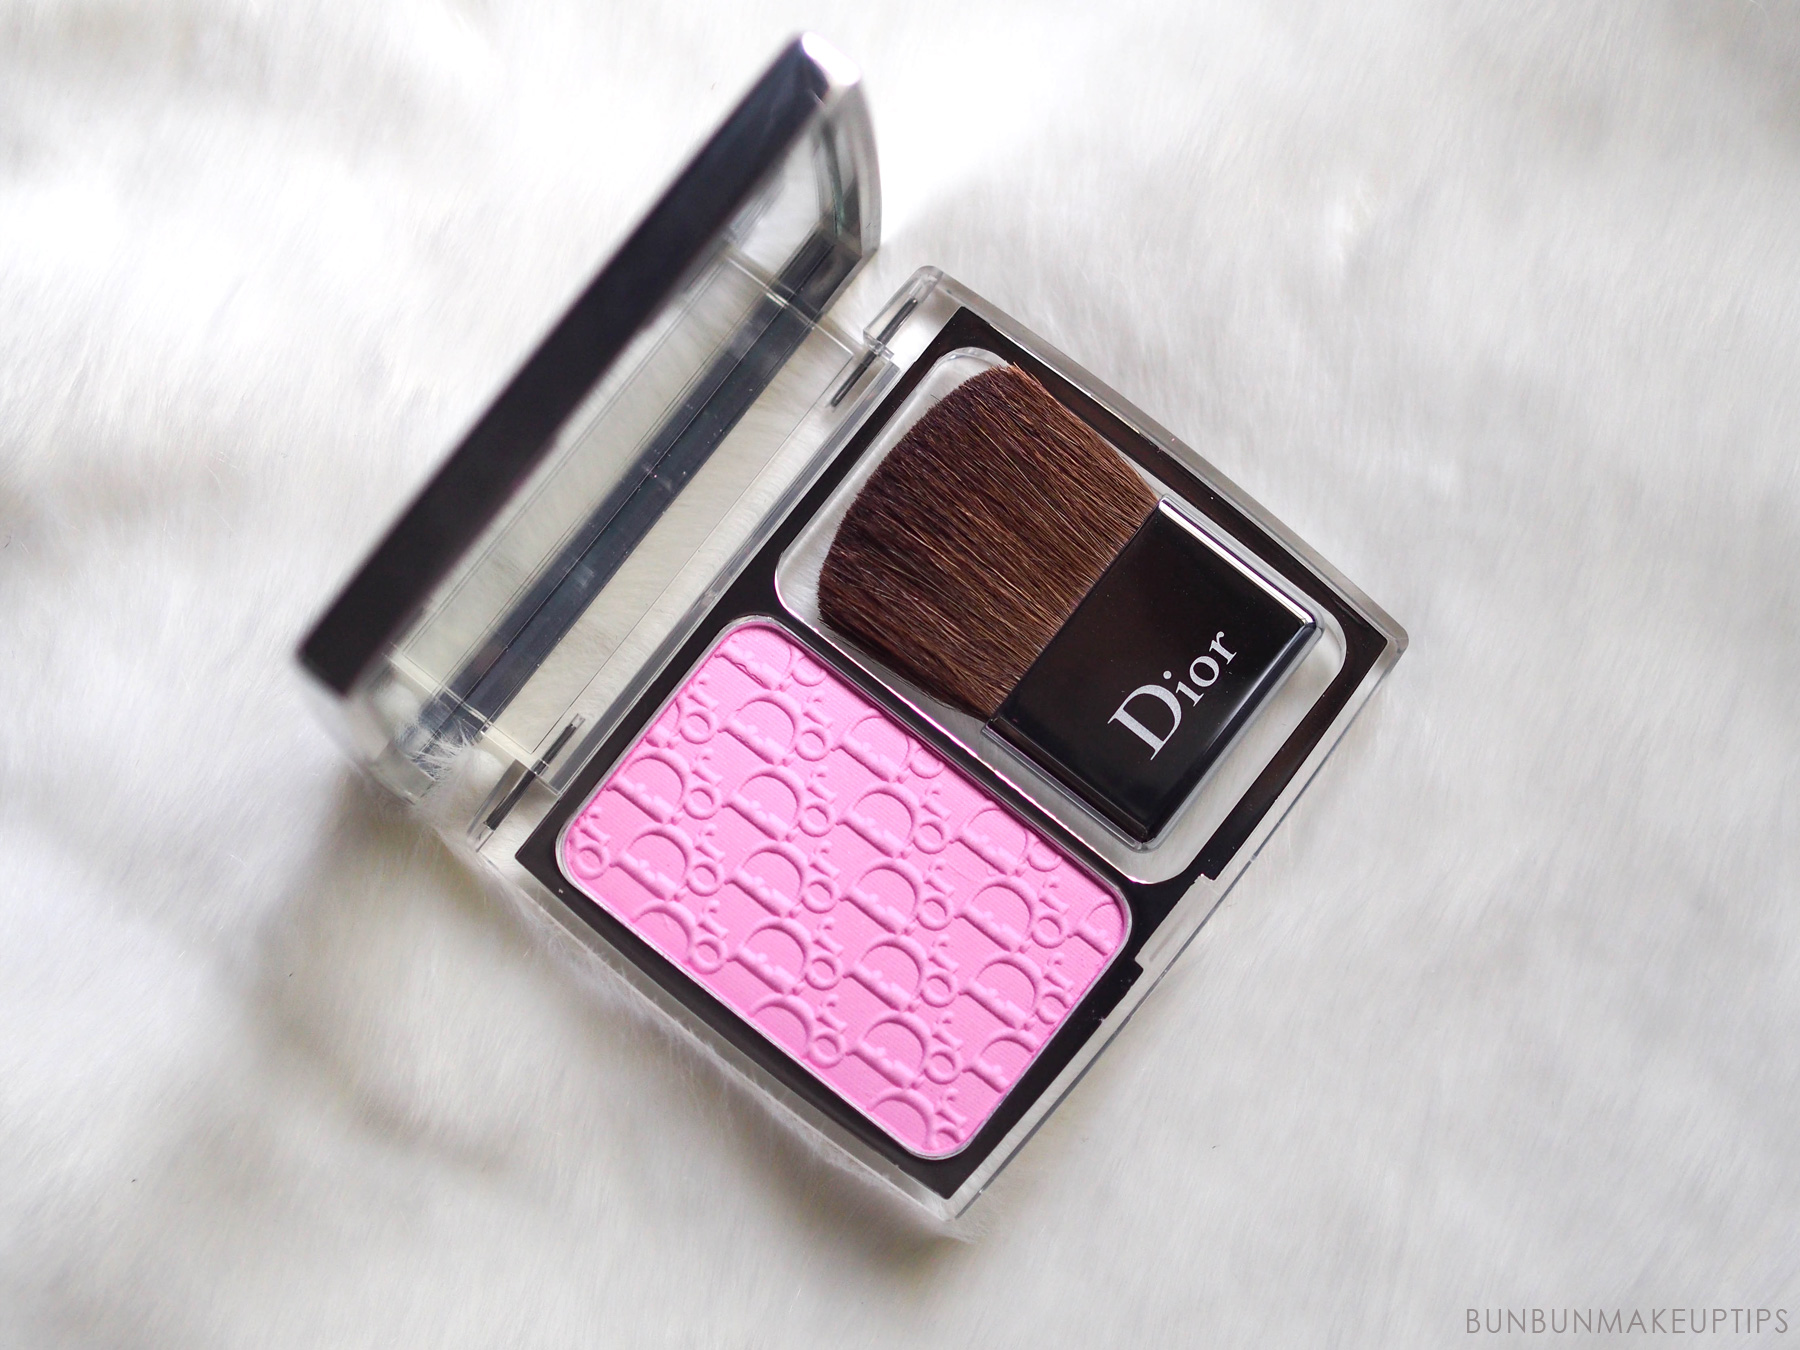 Dior-Rosy-Glow-Healthy-Glow-Awakening-Blush-Review_4